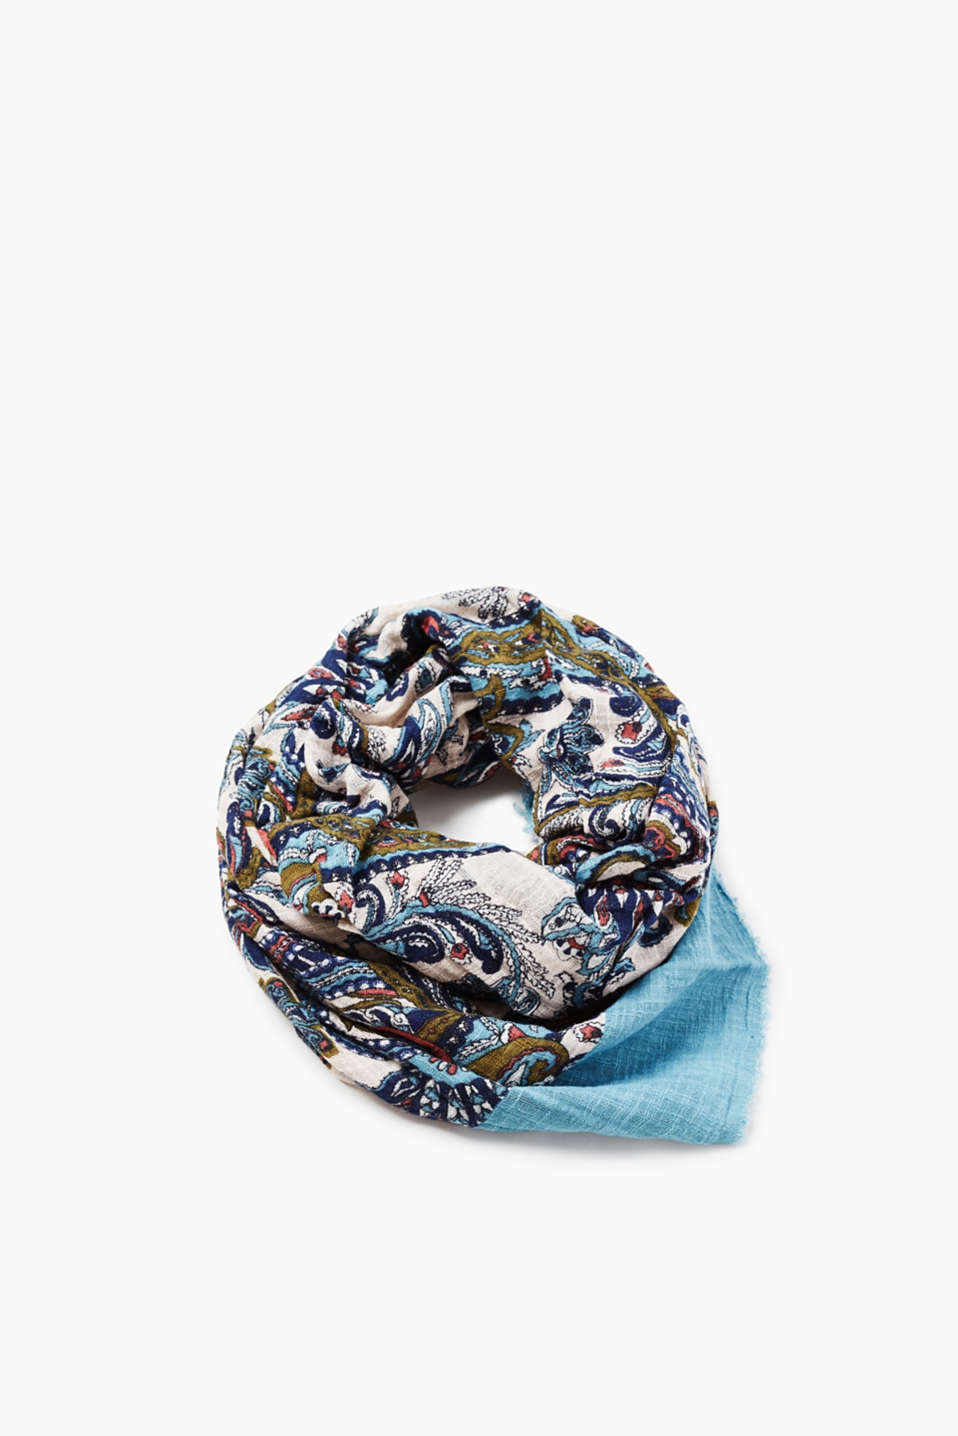 Loosely woven scarf with a colourful paisley pattern, 100% cotton